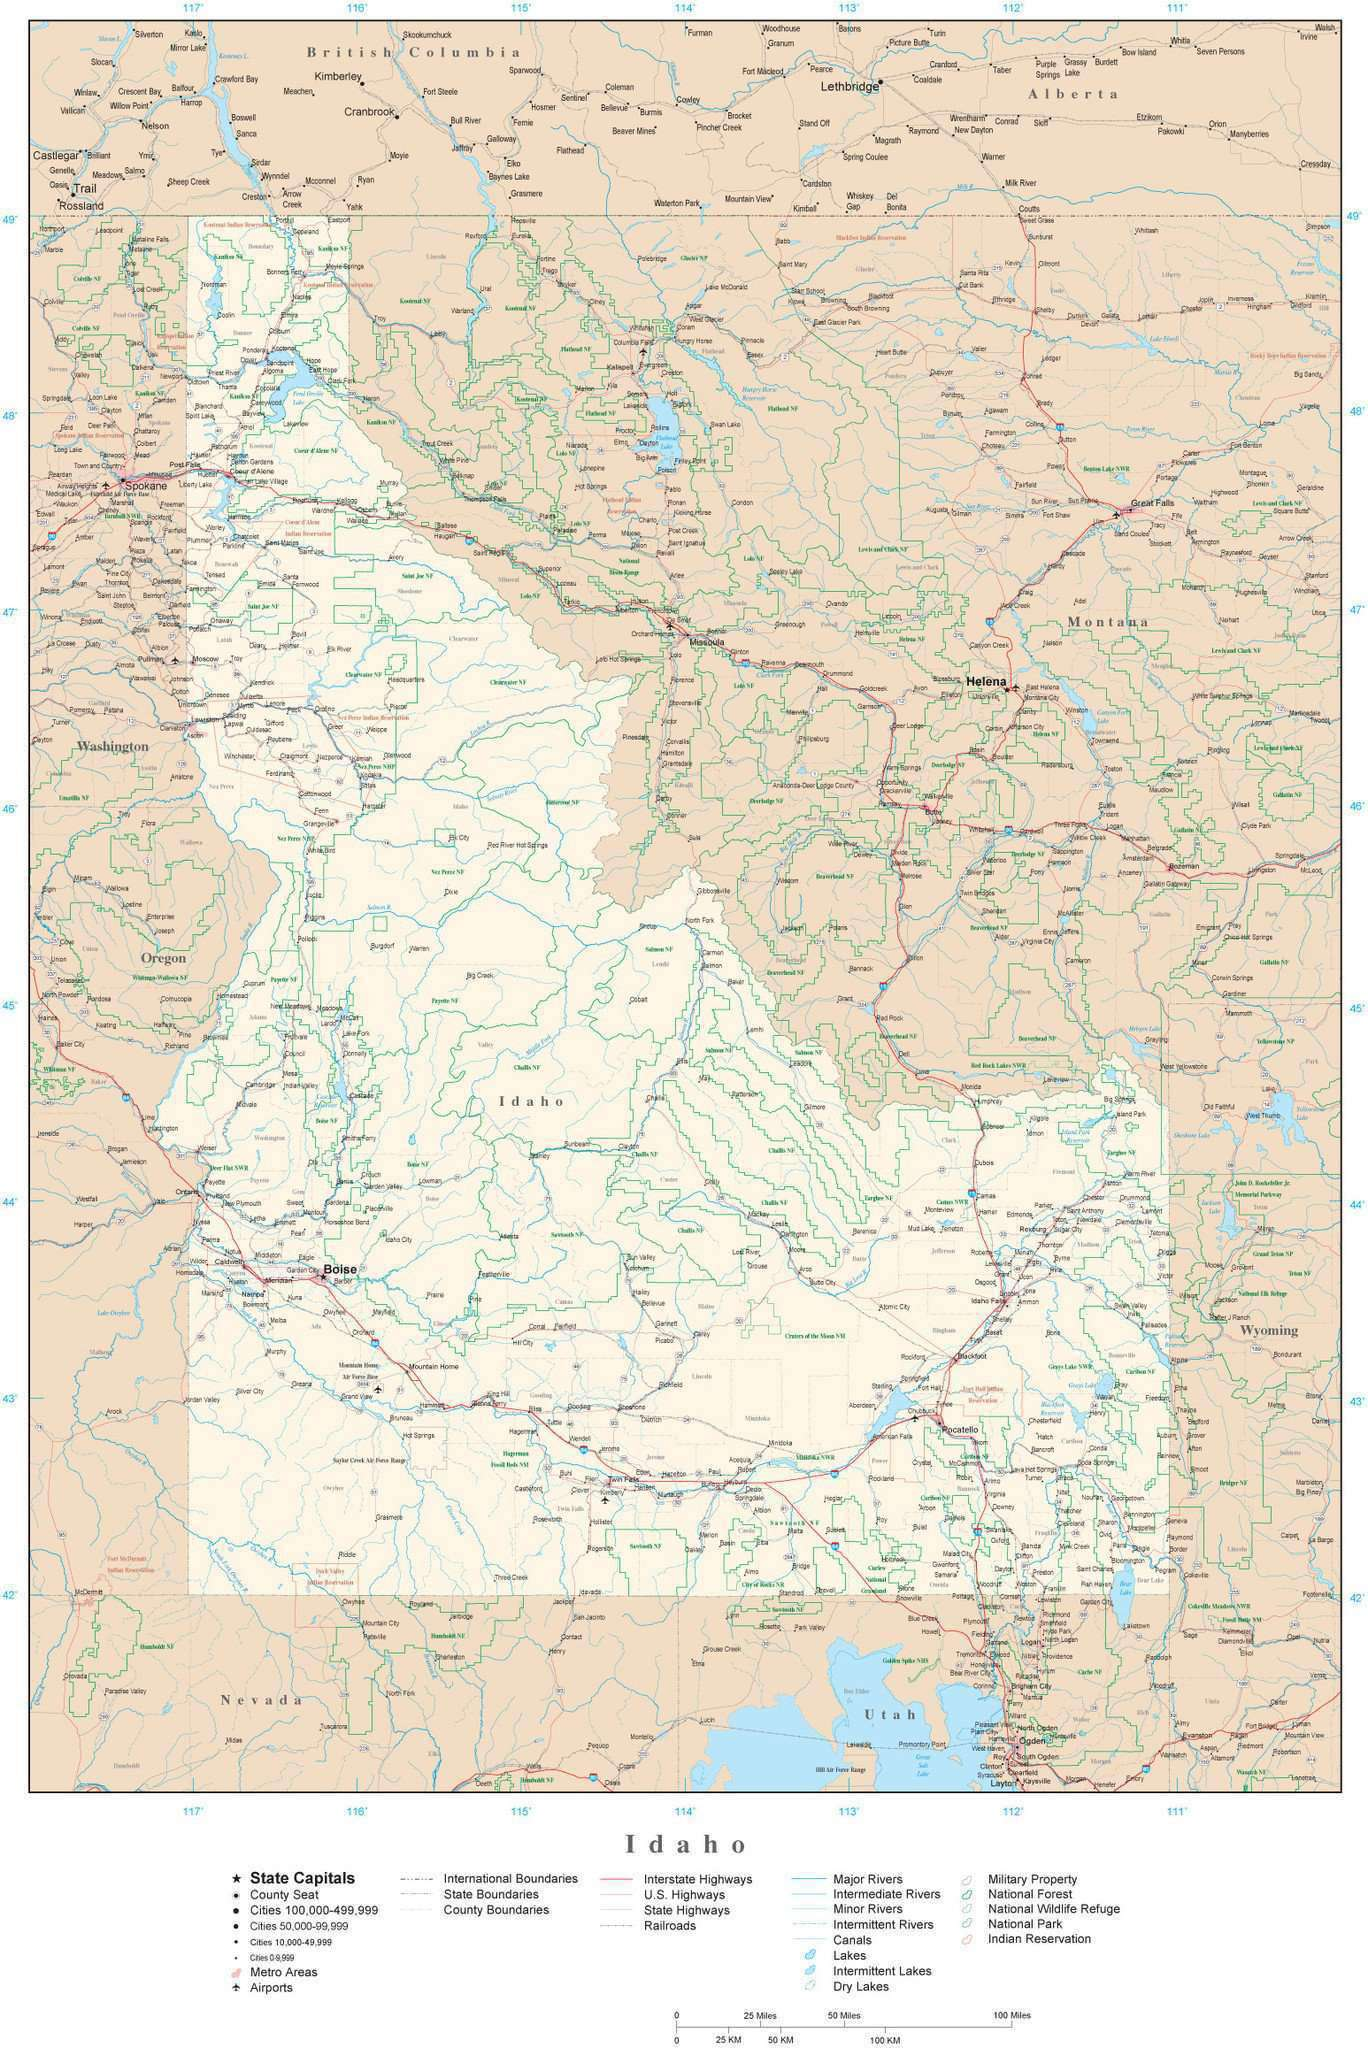 Idaho Detailed Map In Adobe Illustrator Vector Format Detailed